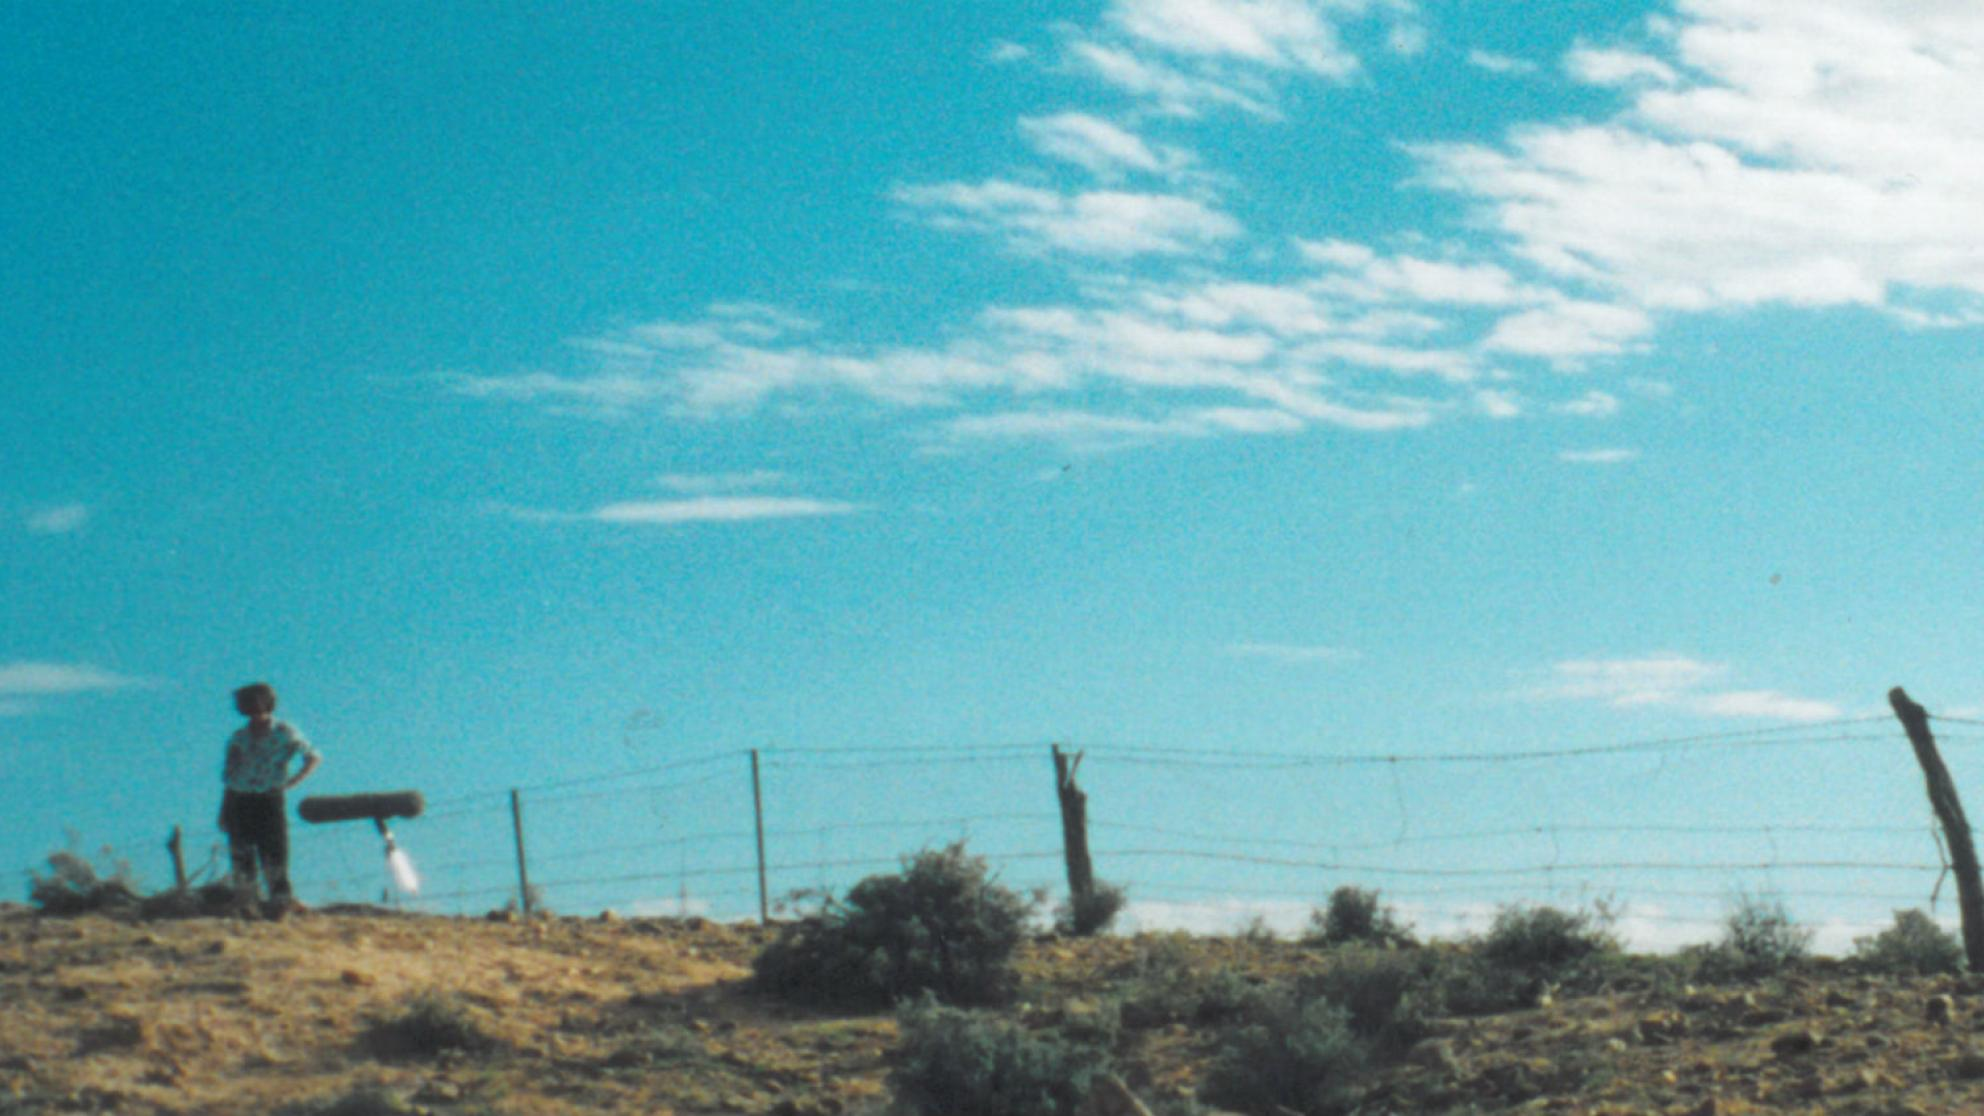 Bronwyn Murphy photographed near fence from a distance with blue sky in the background during filming of Rabbit Proof Fence